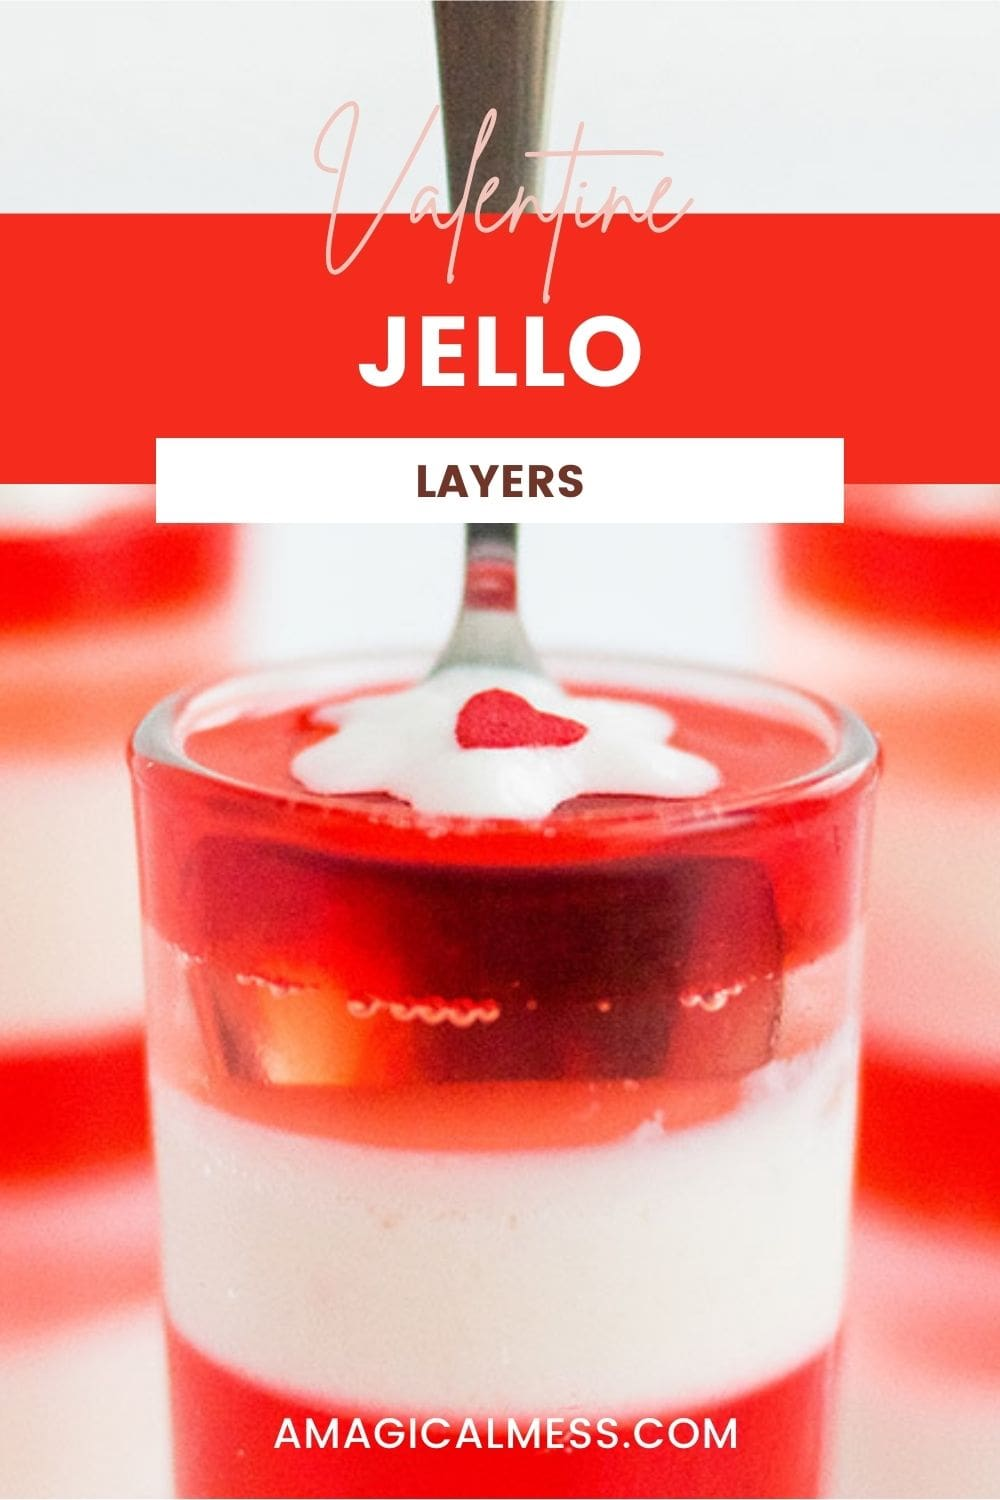 A spoon in a glass of layered jello topped with a tiny bit of whipped cream.